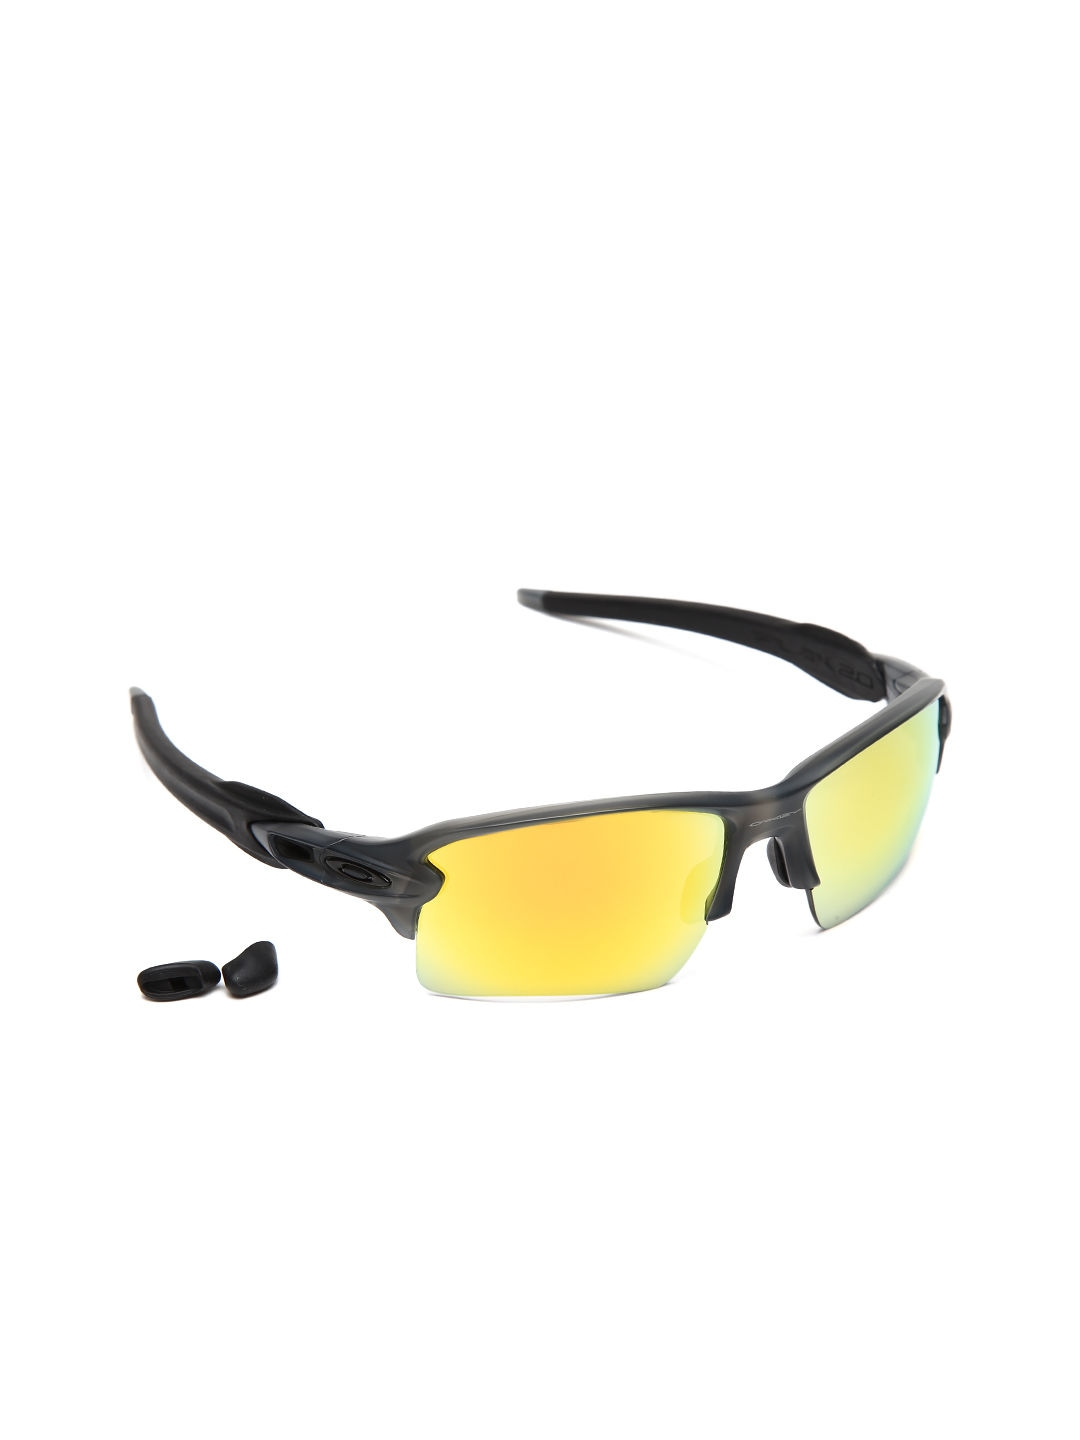 b088f87363 Oakley Youth Prescription Sport Sunglasses « Heritage Malta